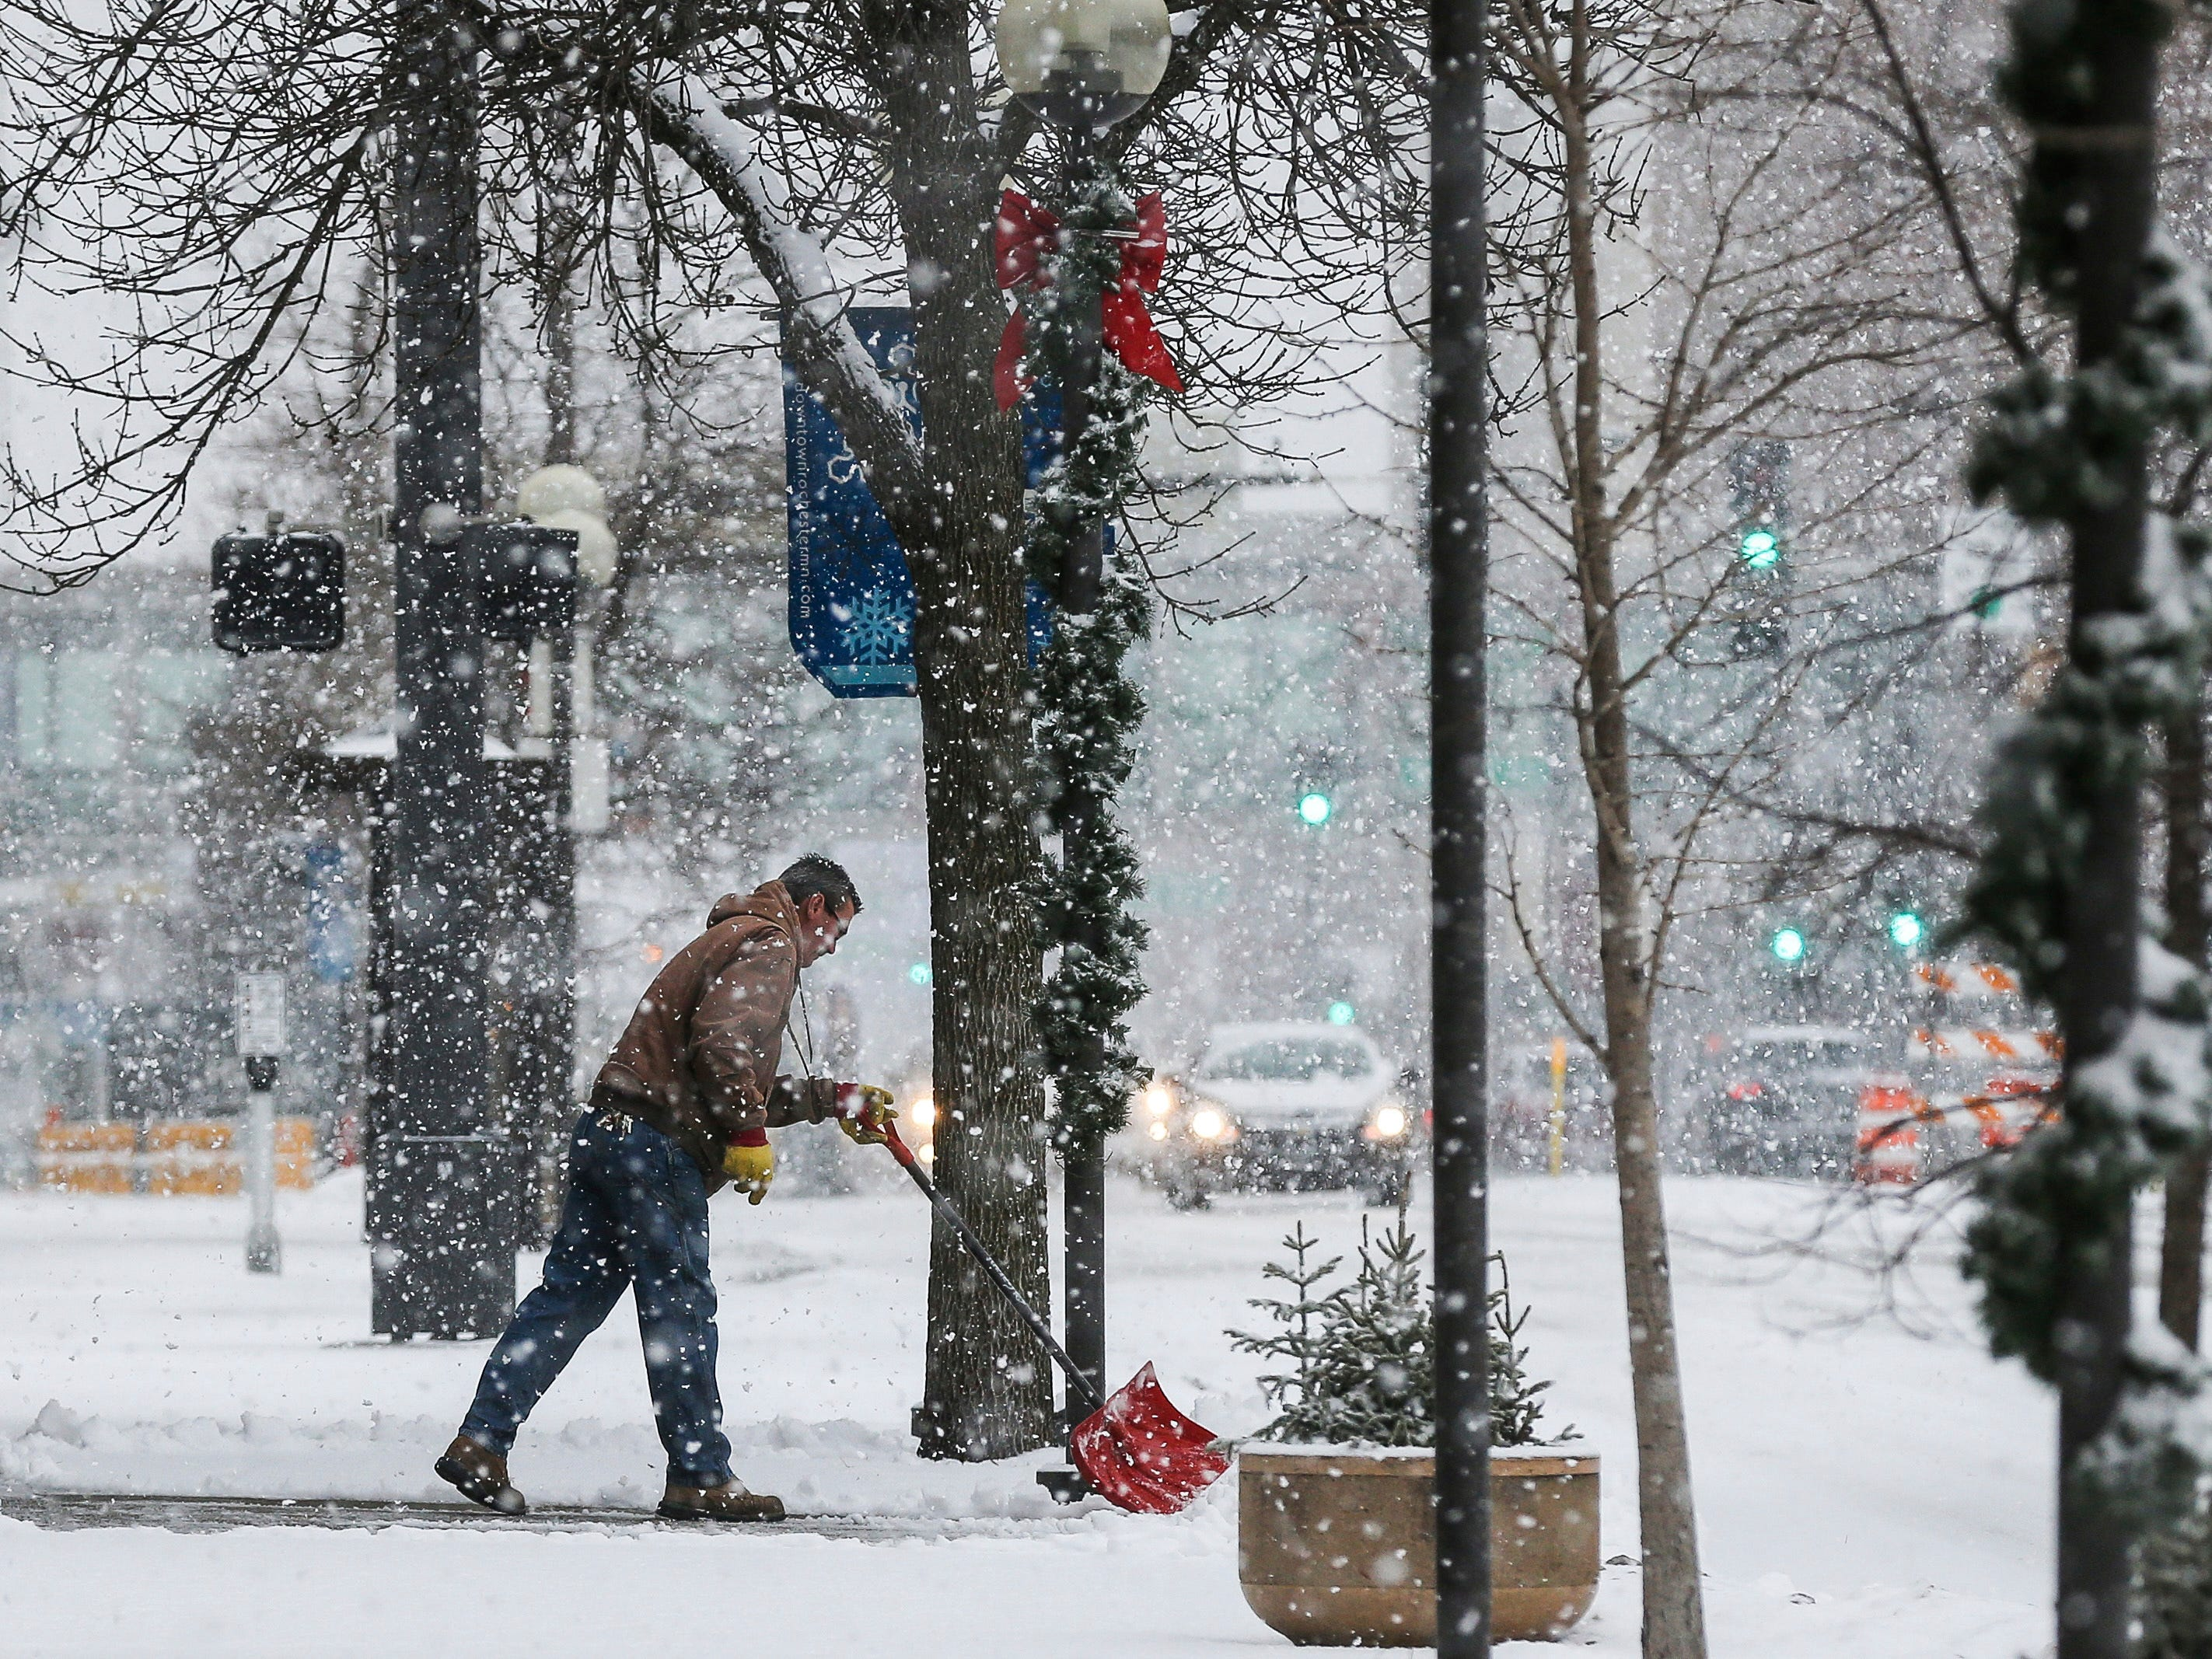 Ron Ruport, owner of Old Rooster Antiques, shovels in front of his shop as heavy snow falls Dec. 1, 2018, along Broadway Avenue North in downtown Rochester, Minn.